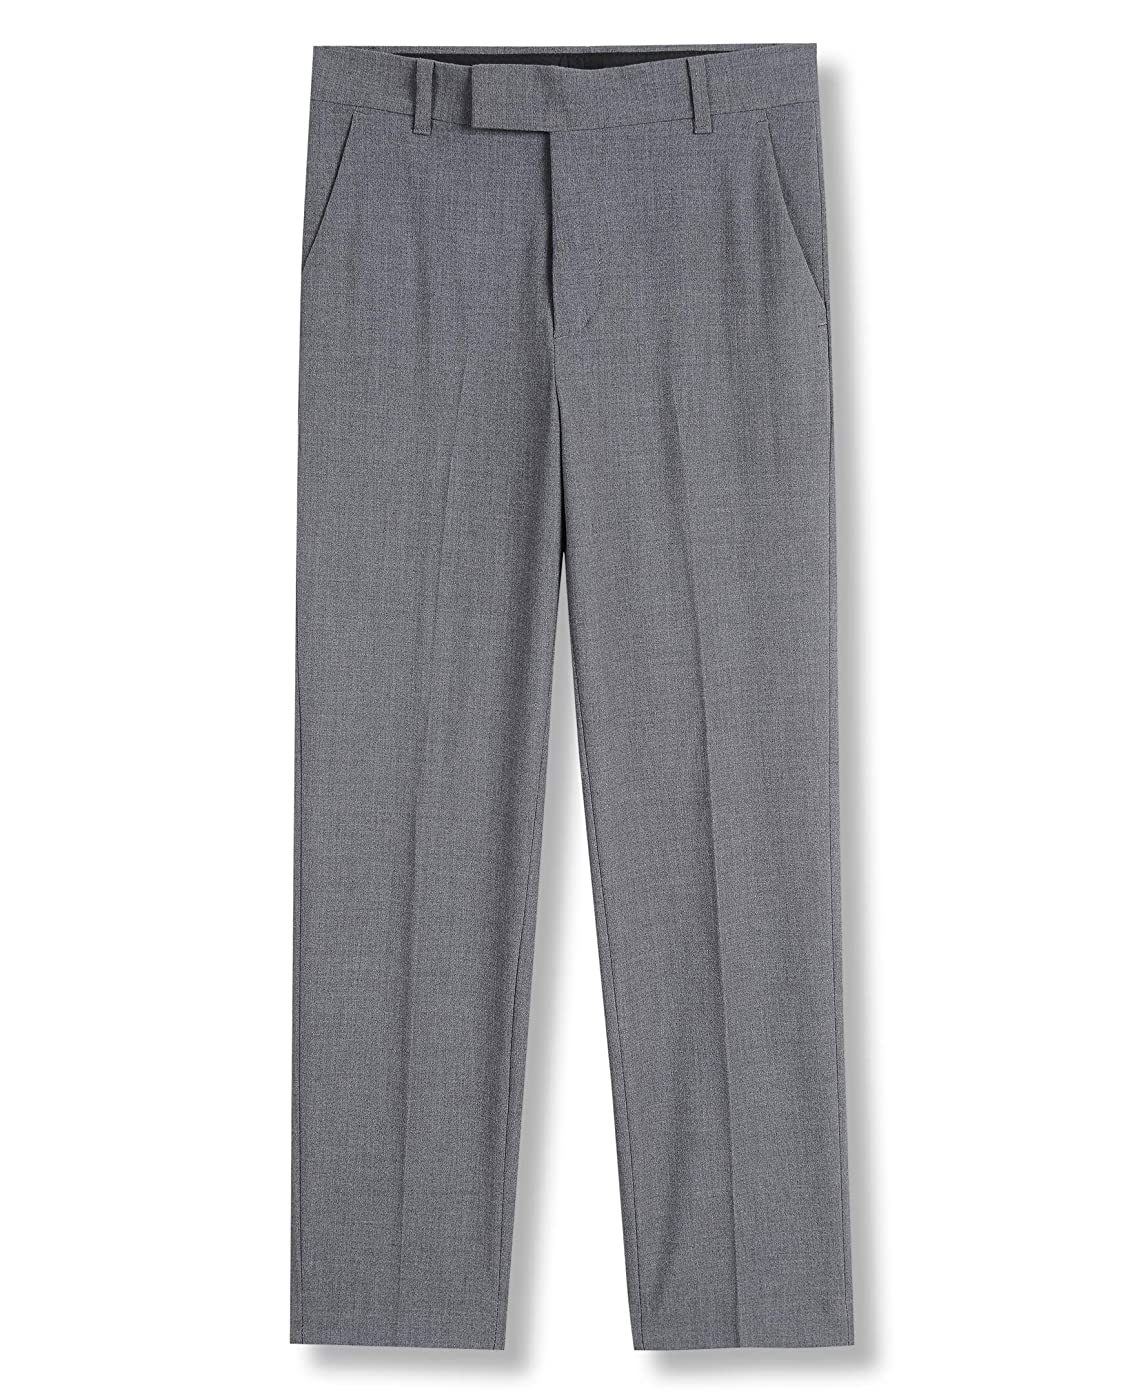 Calvin Klein Boys' Bi-Stretch Flat Front Dress Pant